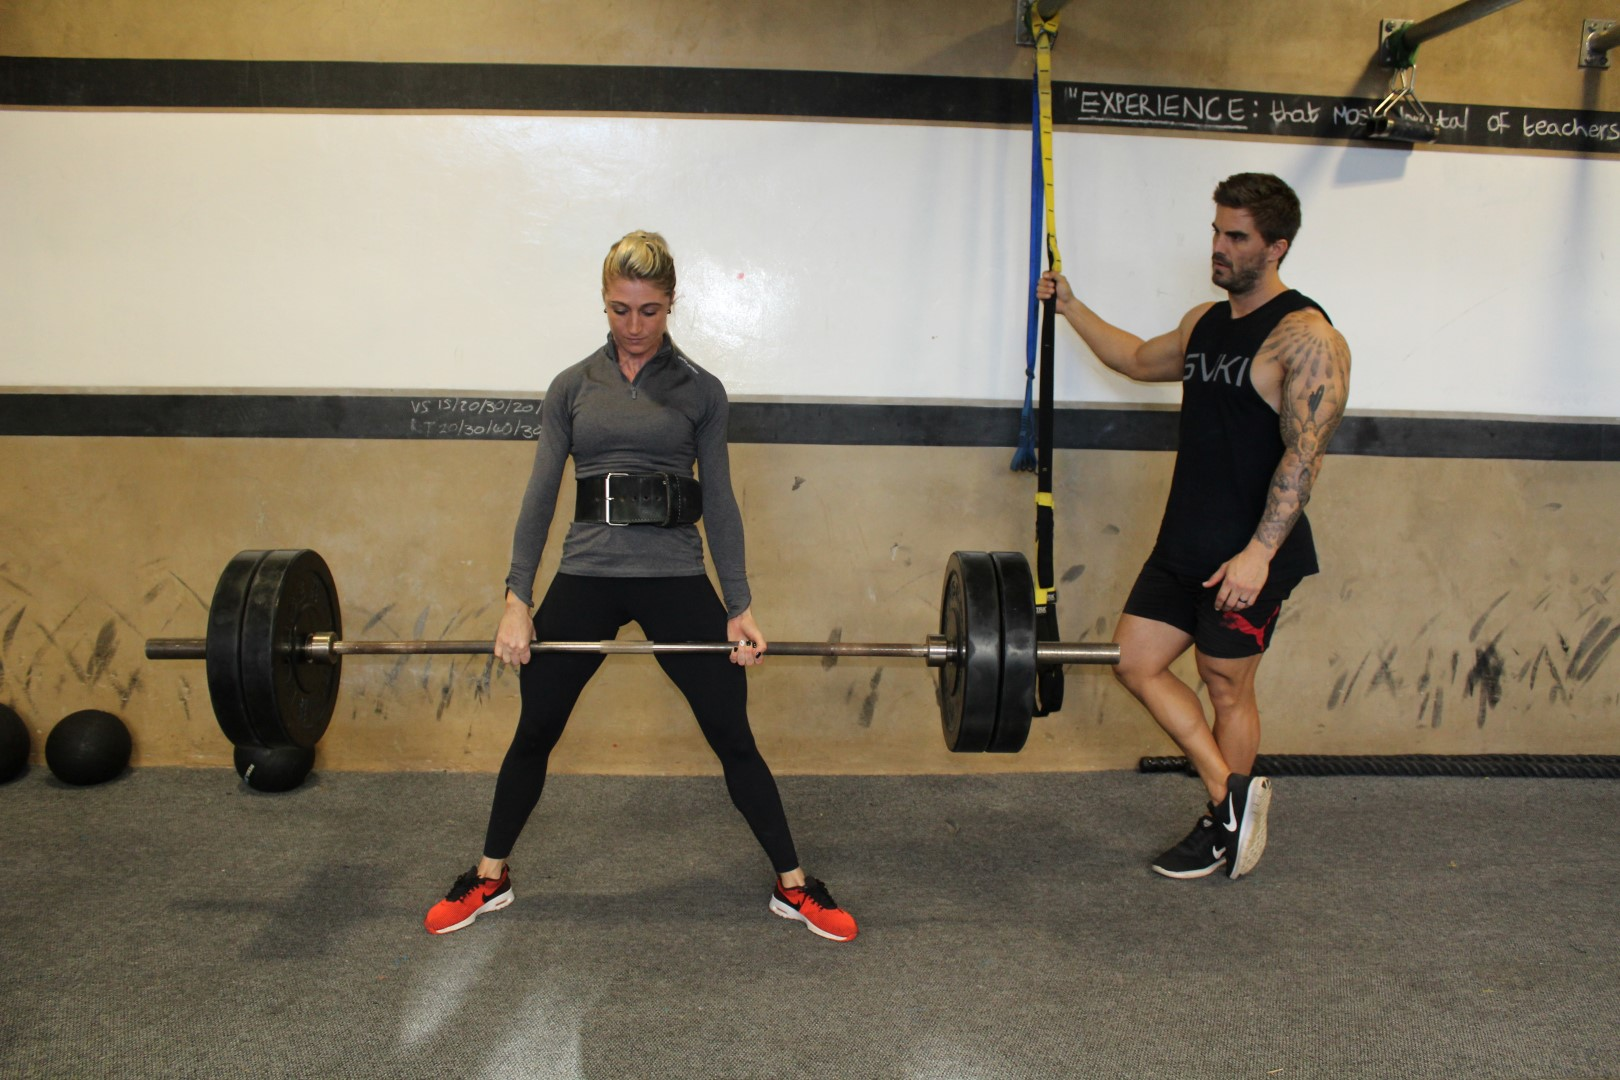 Lil and Scott Kimble recently qualified for the GPC World Powerlifting Champs in Trutnov, Czech Republic in September. Incredibly, Lil broke eight world records at the SA champs which was used a qualifying event.